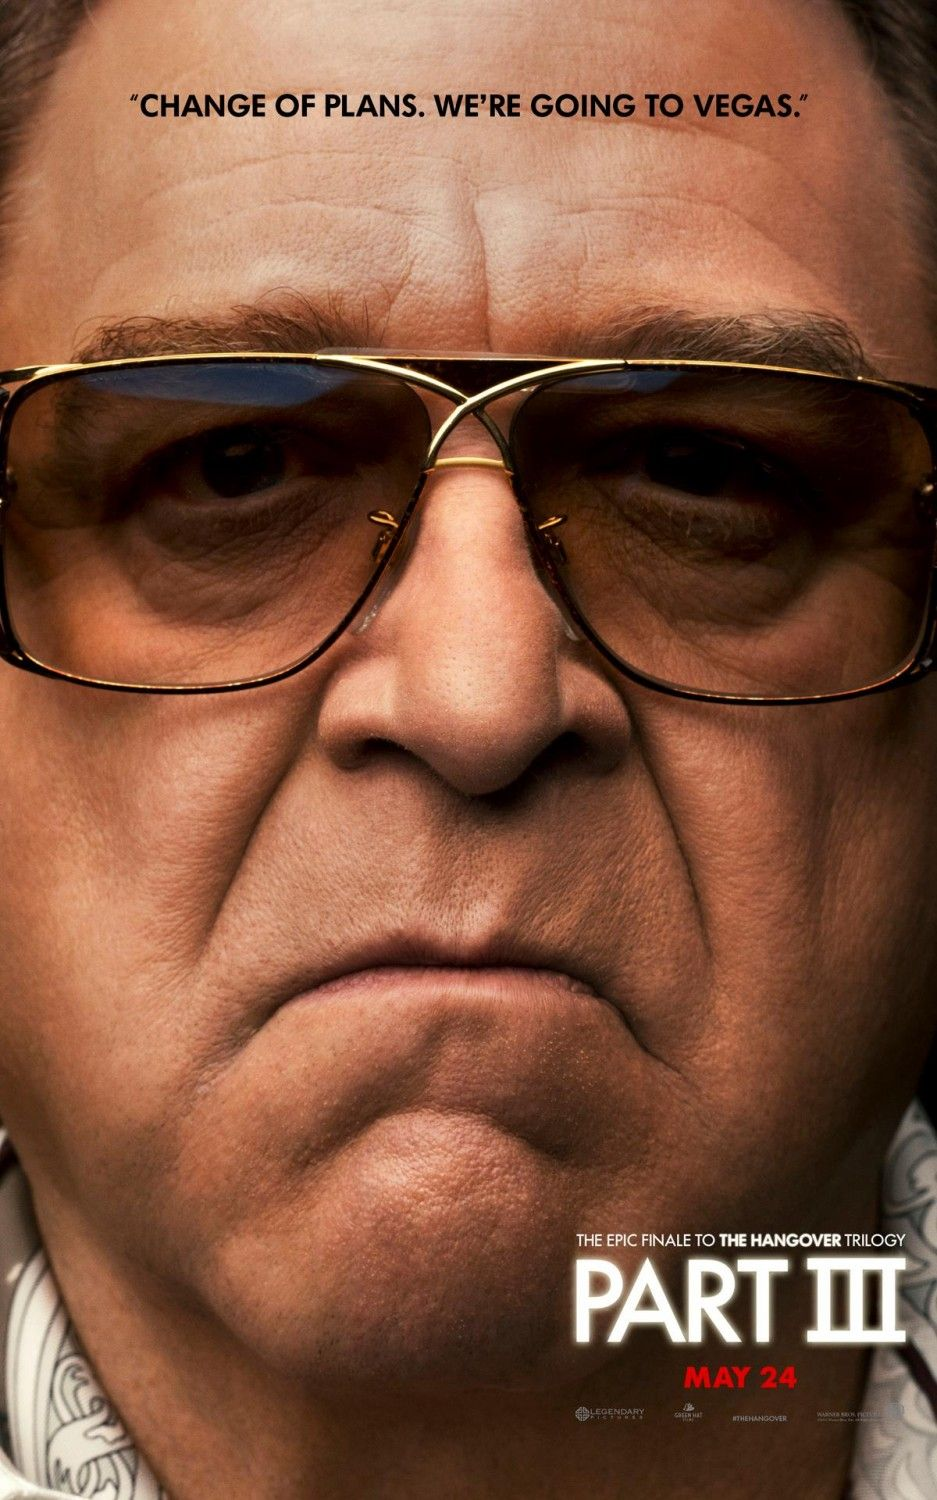 The Hangover Part Iii Gives John Goodman A Close Up In This New